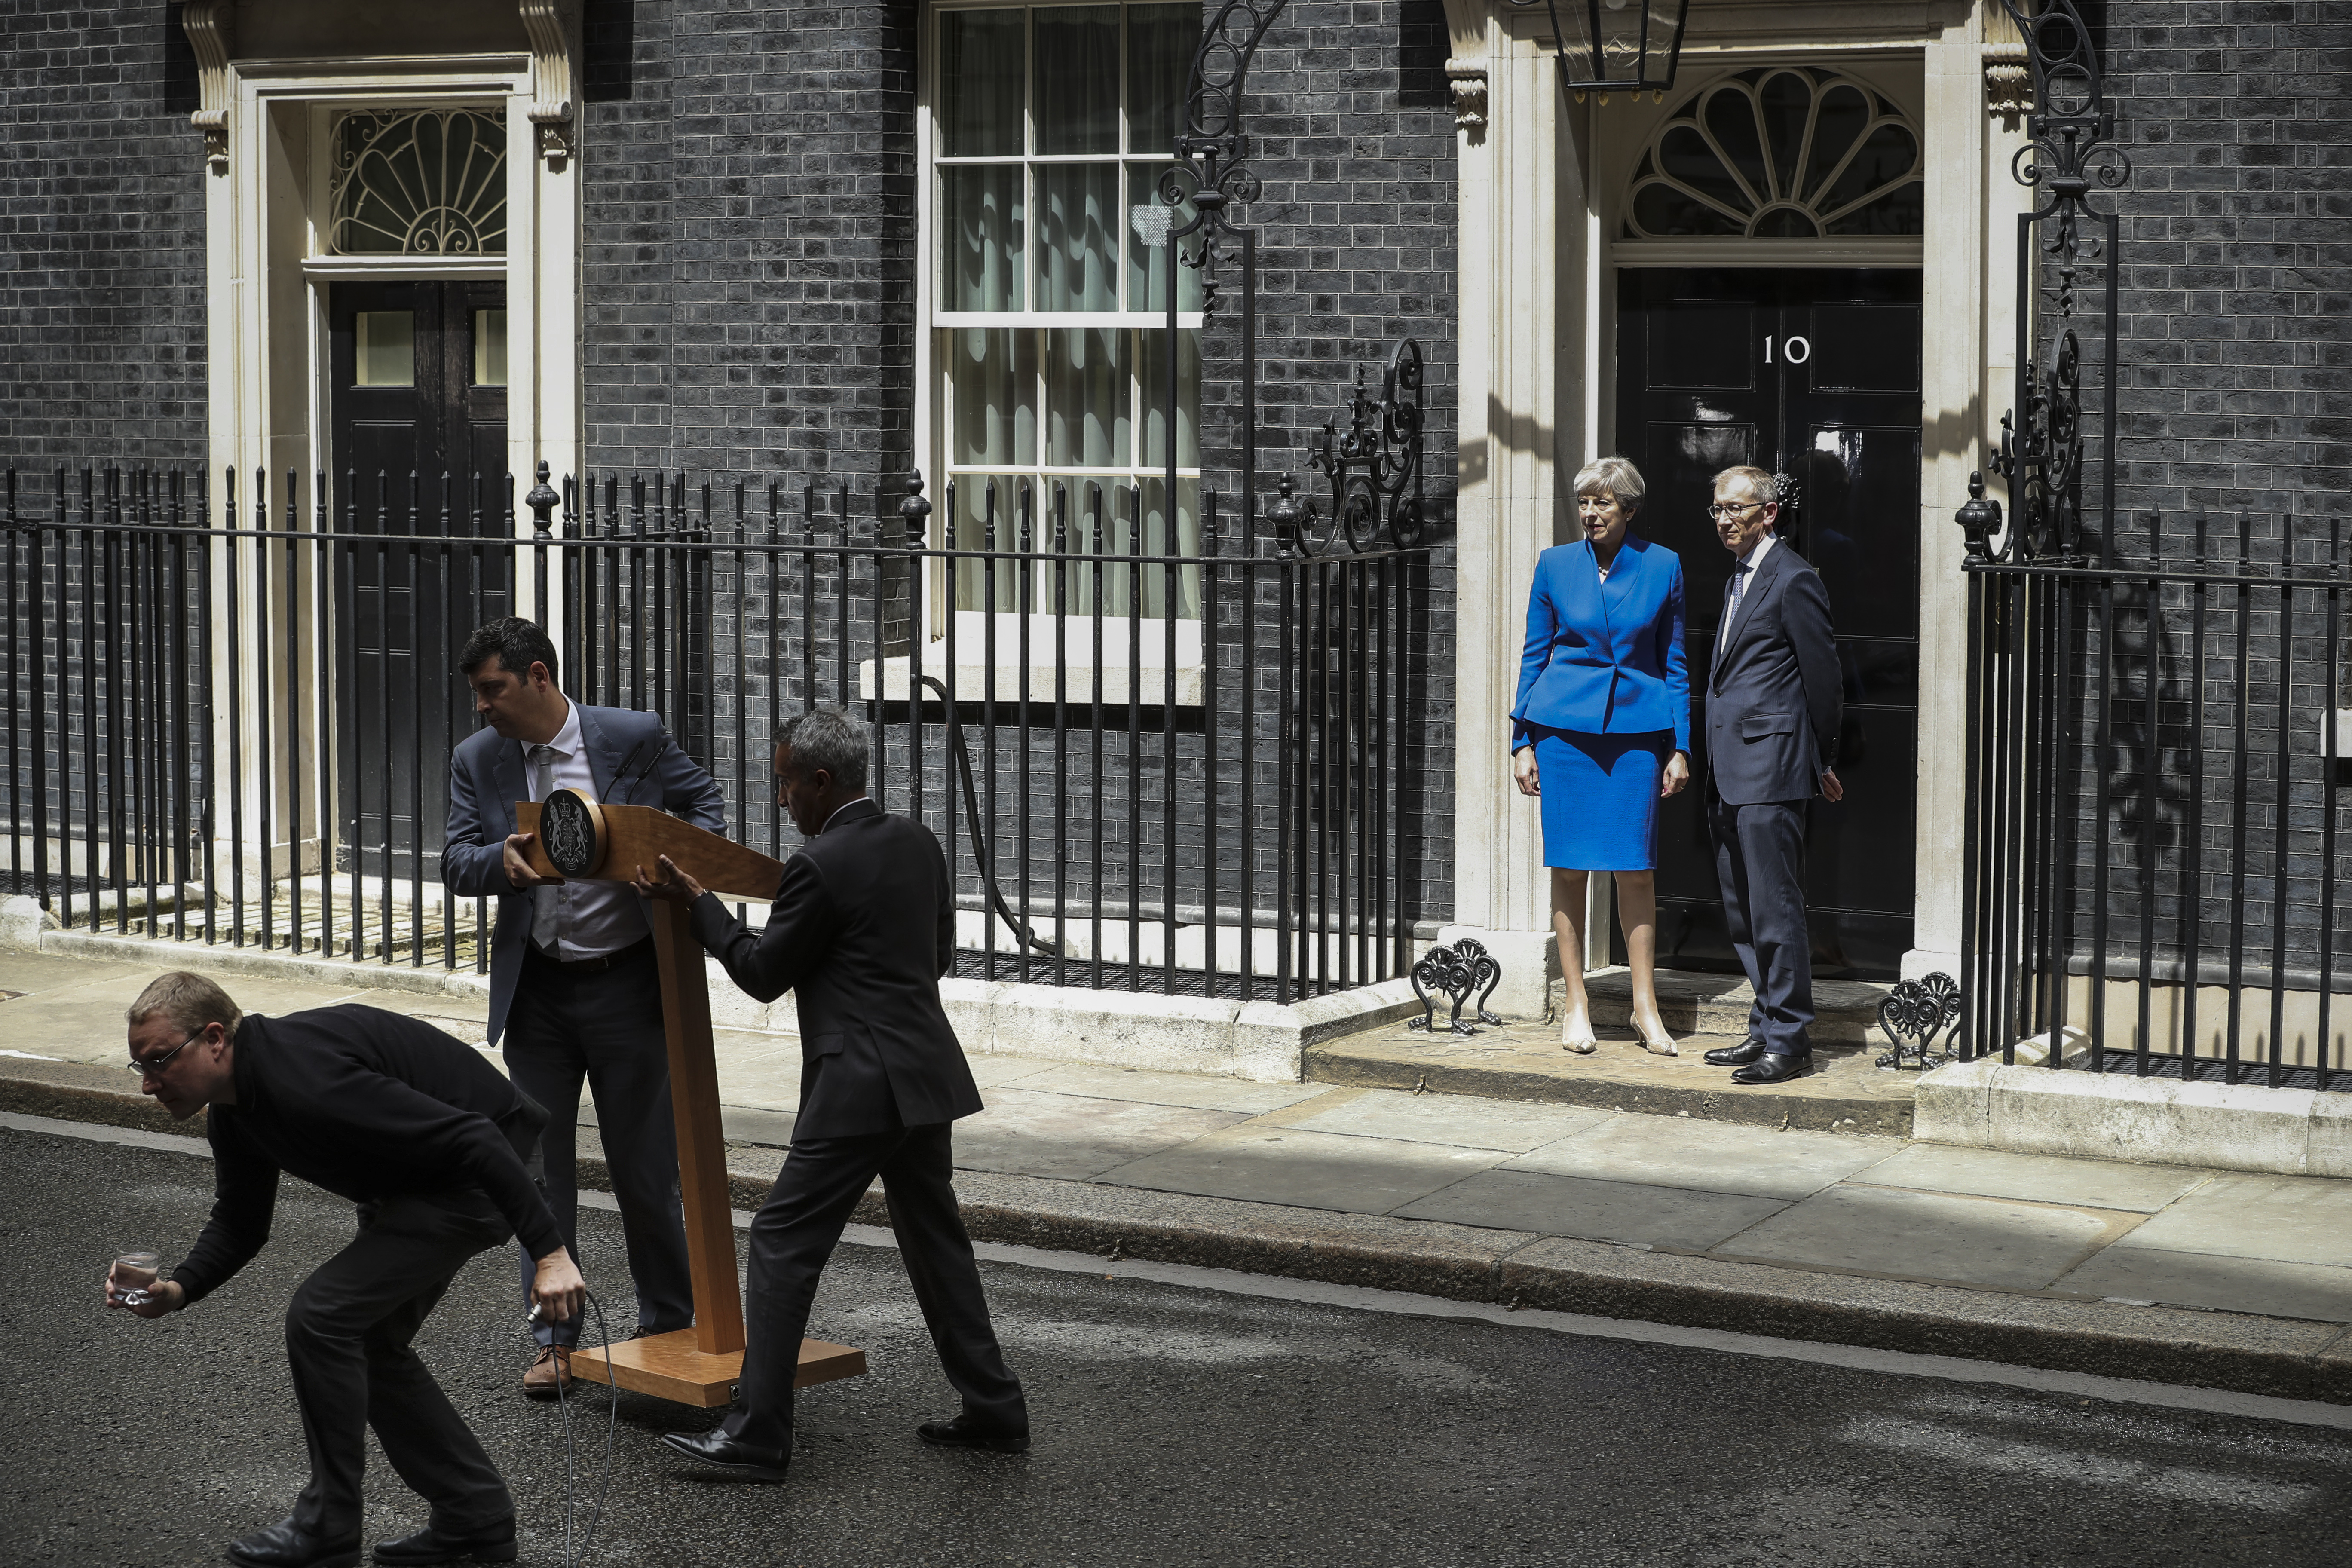 United Kingdom headlines reflect election drama